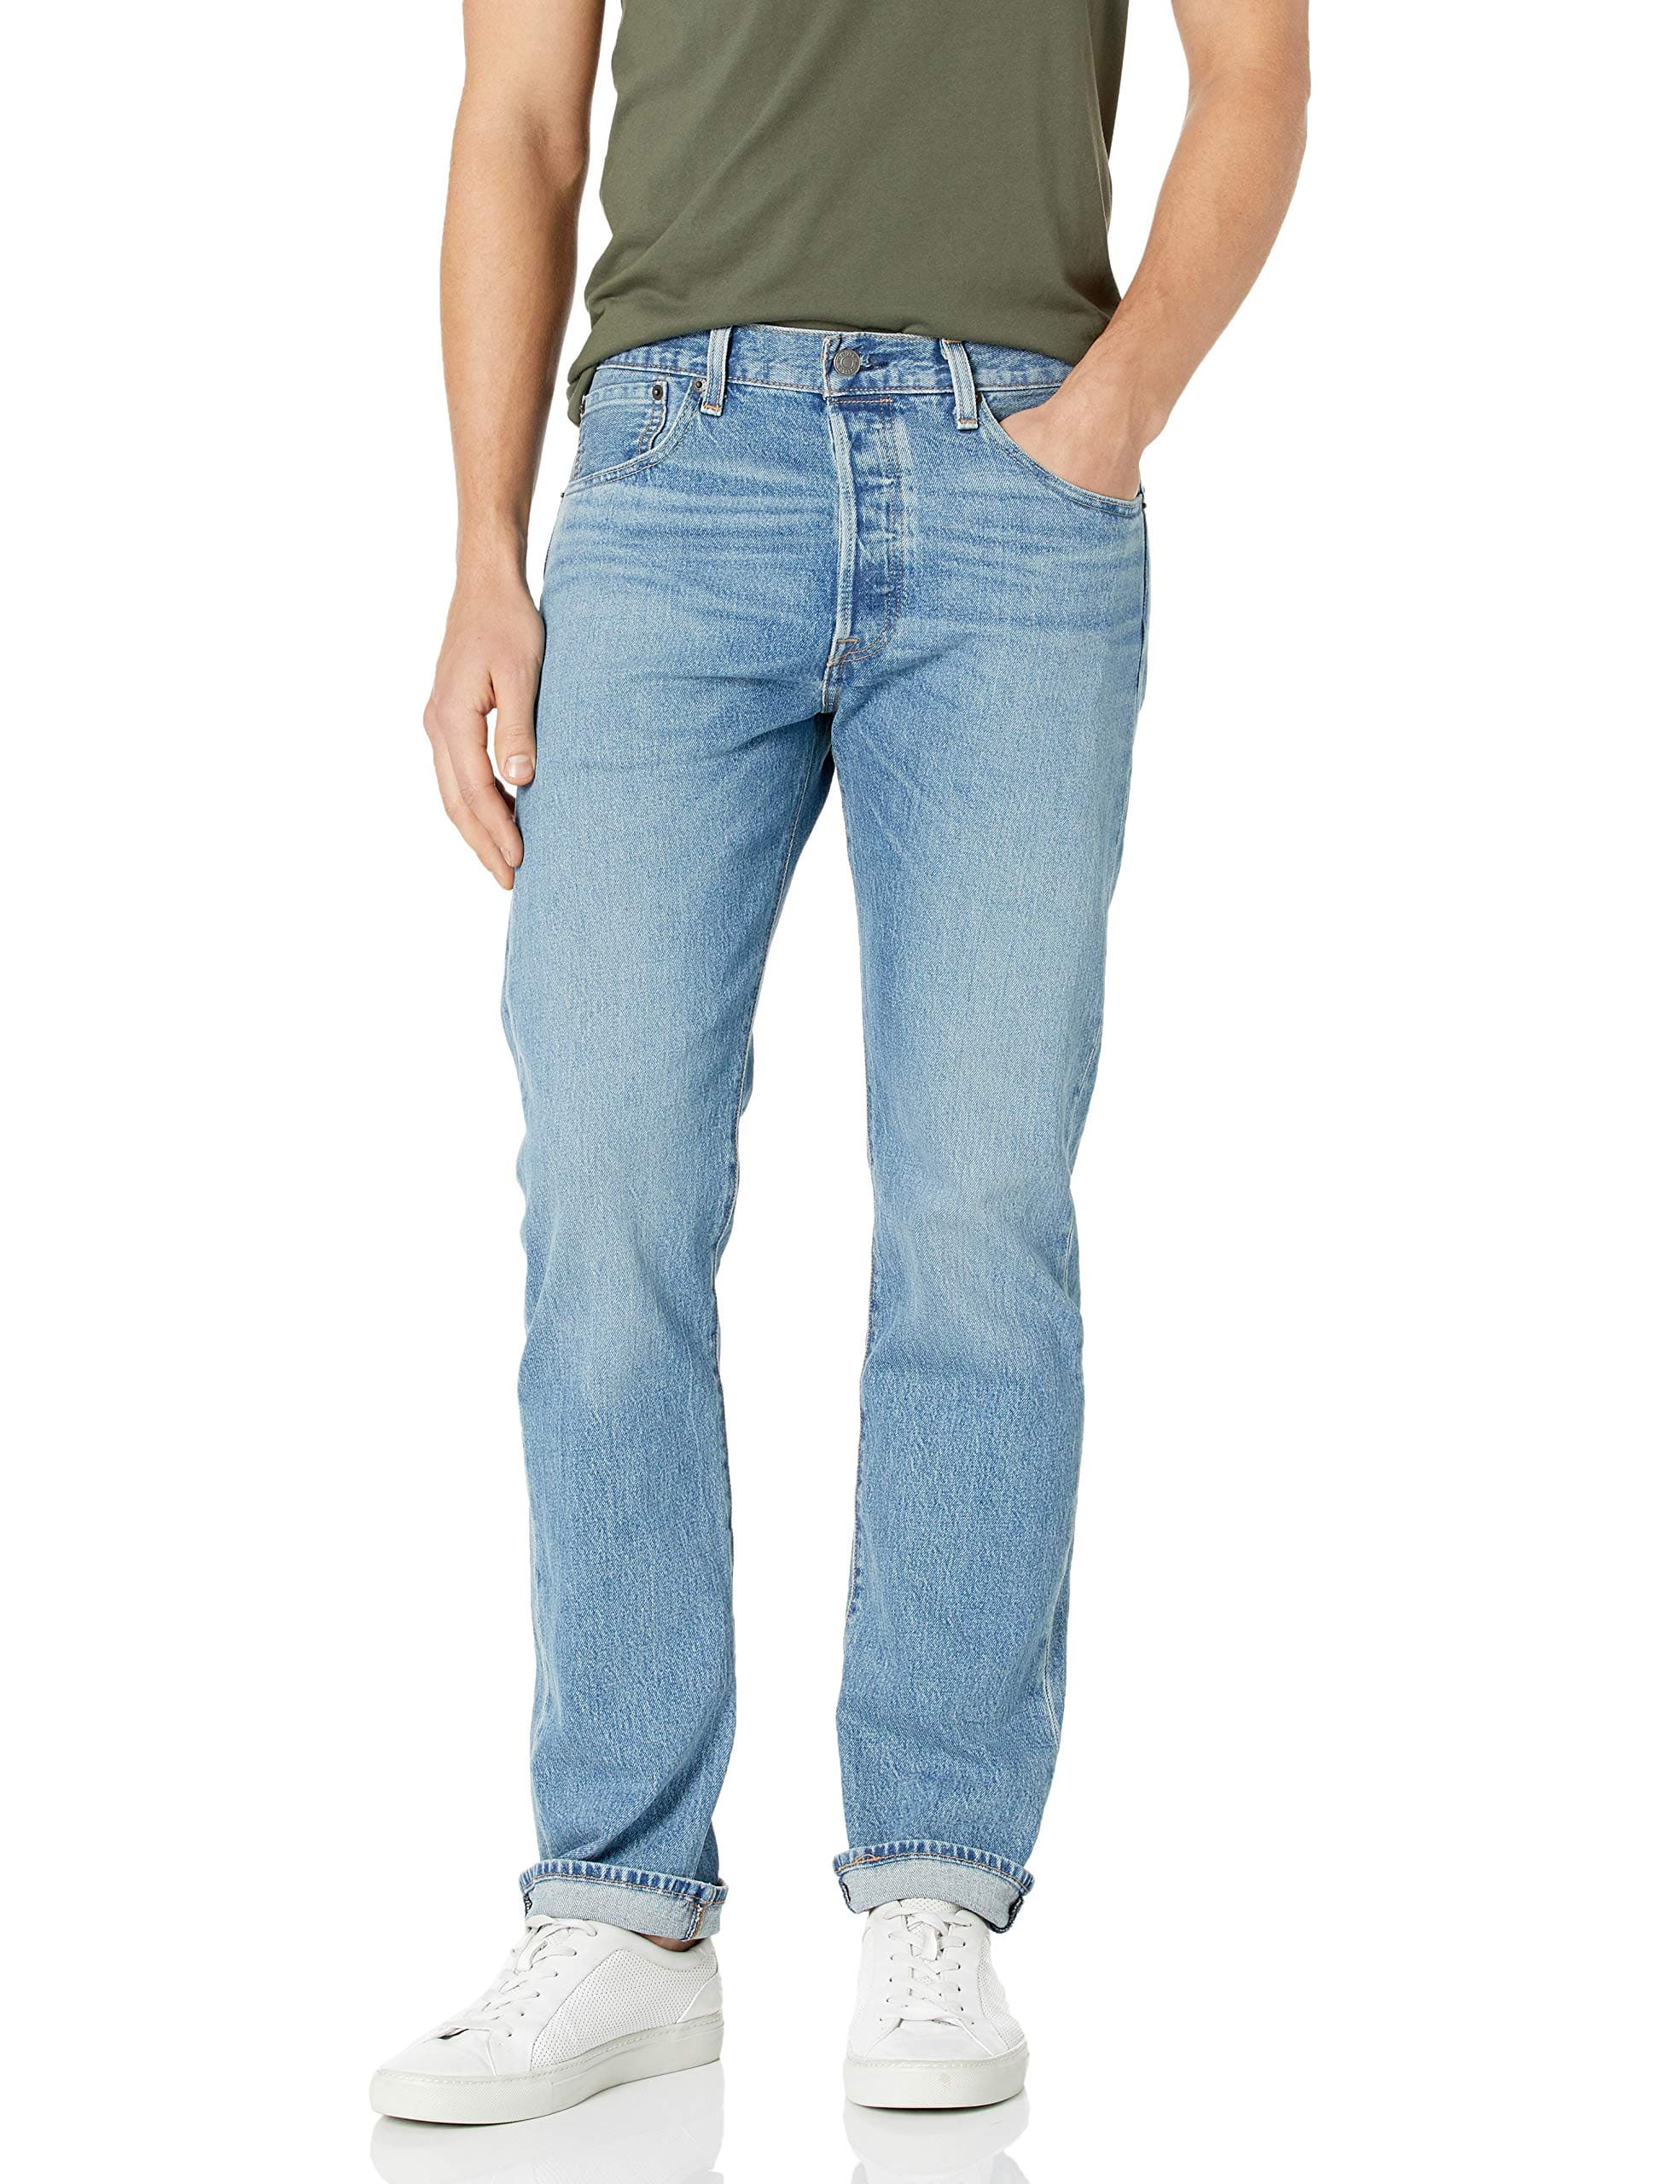 Levi's Men's 501 Original Fit Jeans (The Ben) $18.97 + free shipping w/ Prime or on orders over $25